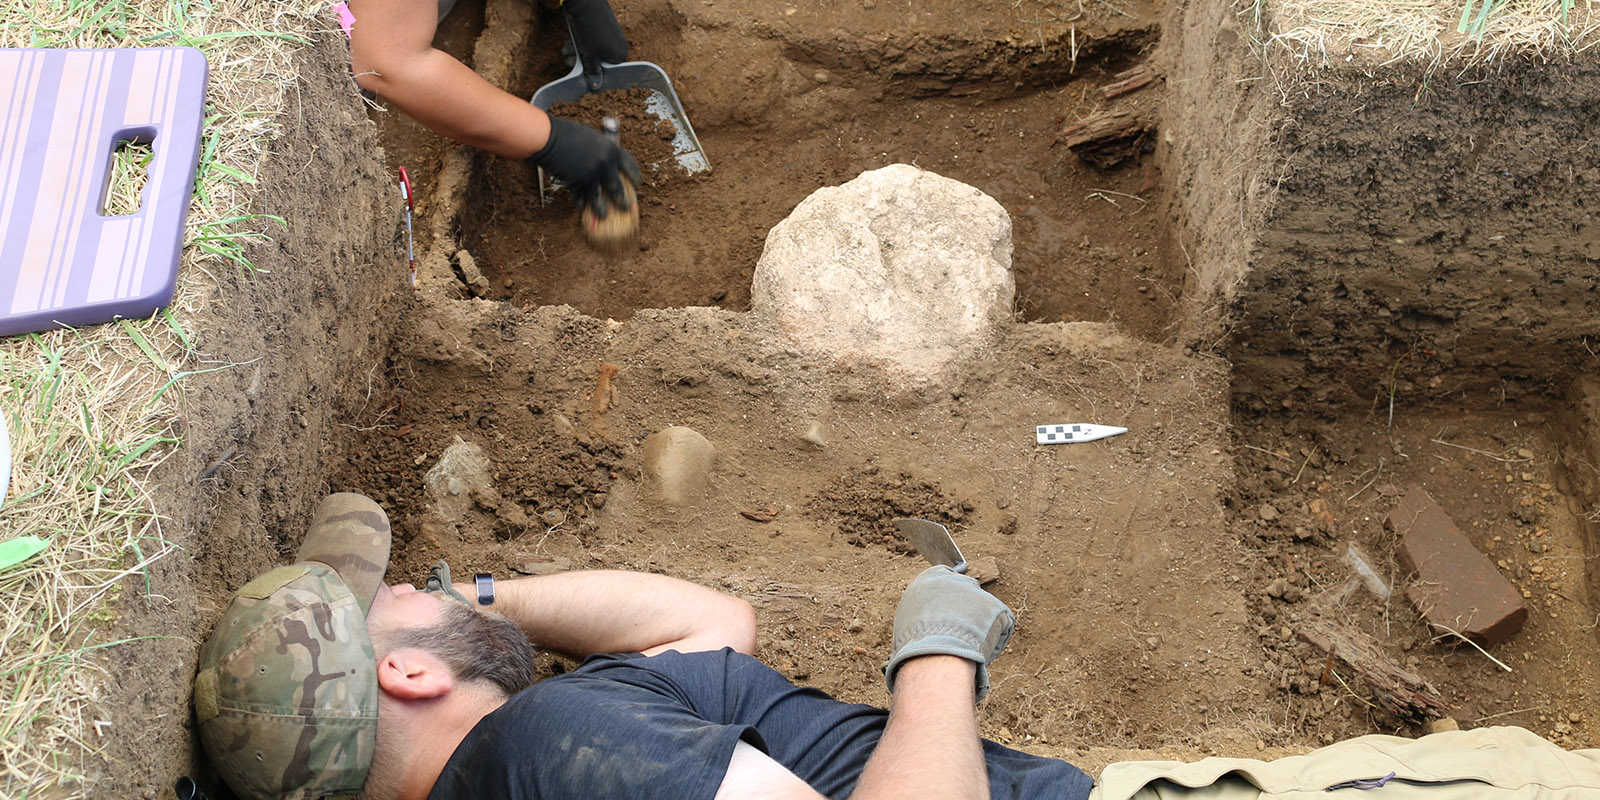 A man digs in a pit with rock artifacts around him